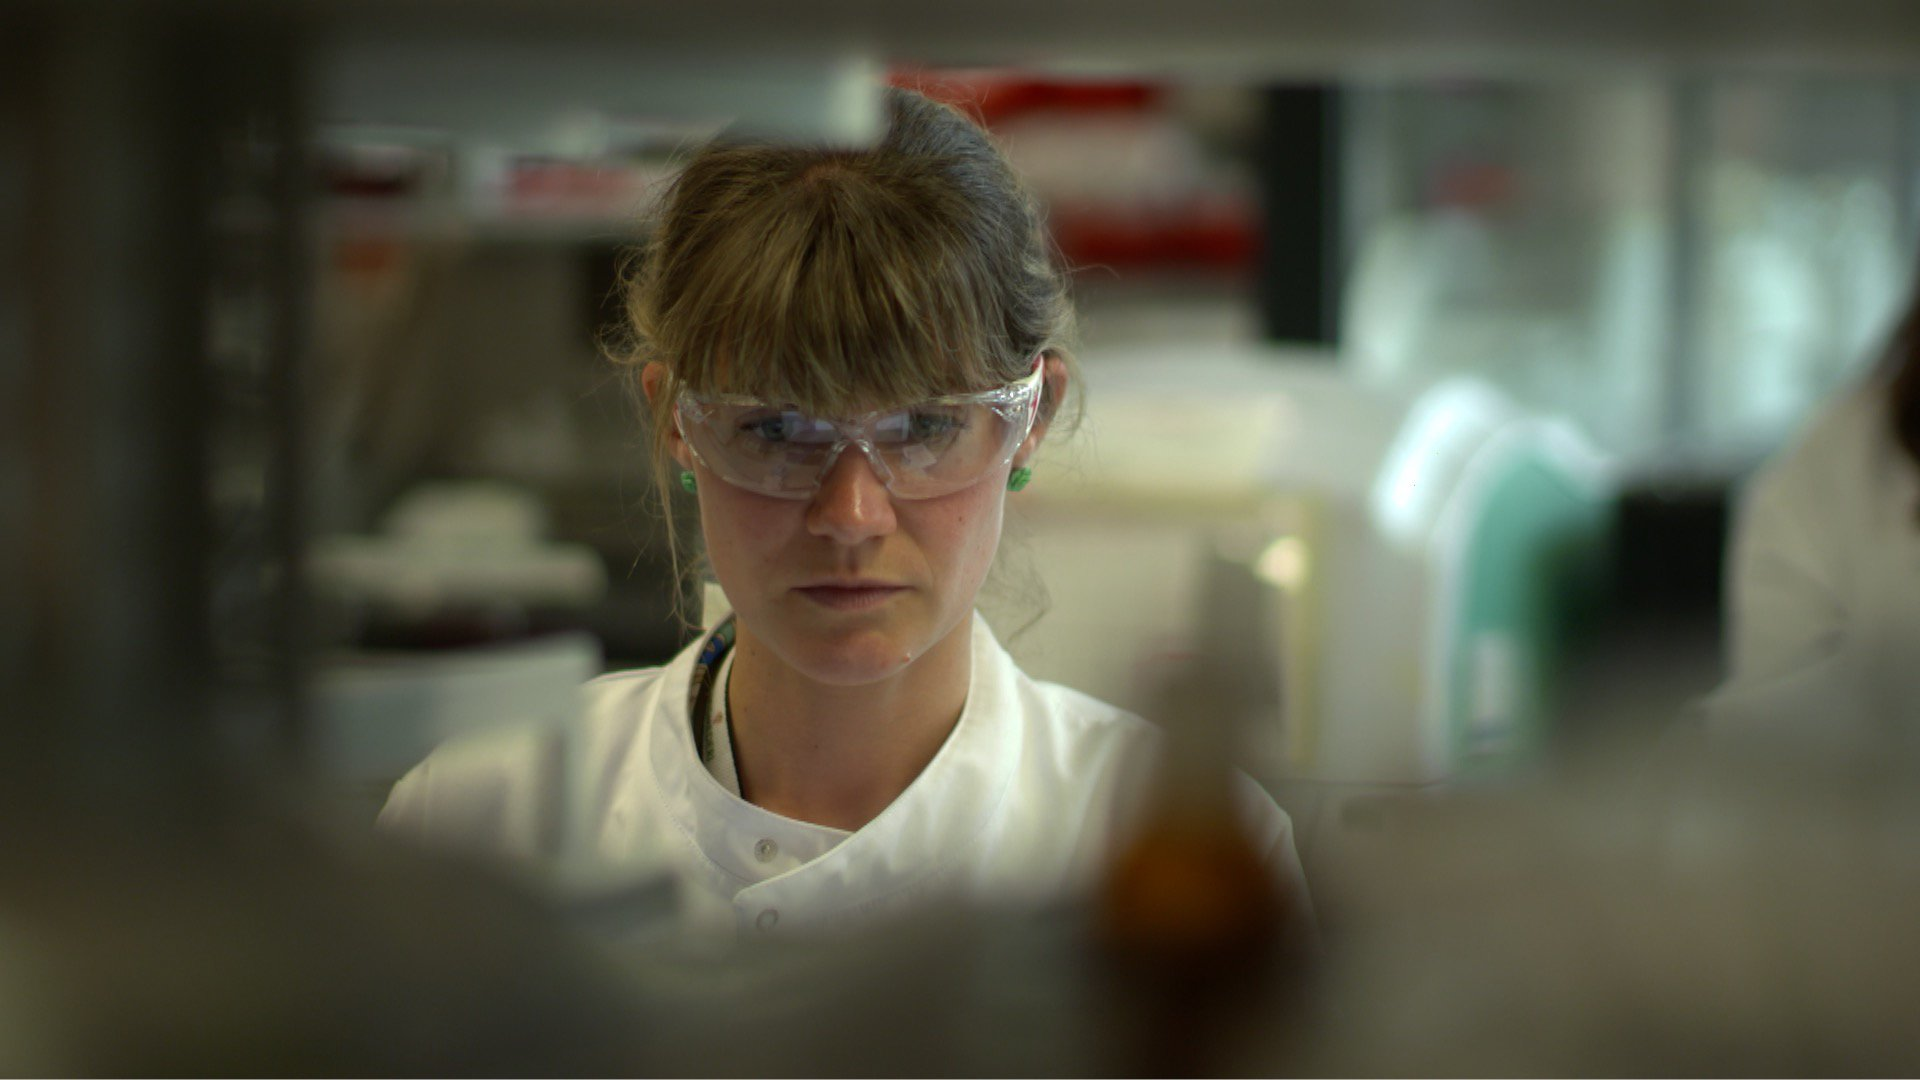 Scientist at work in the lab